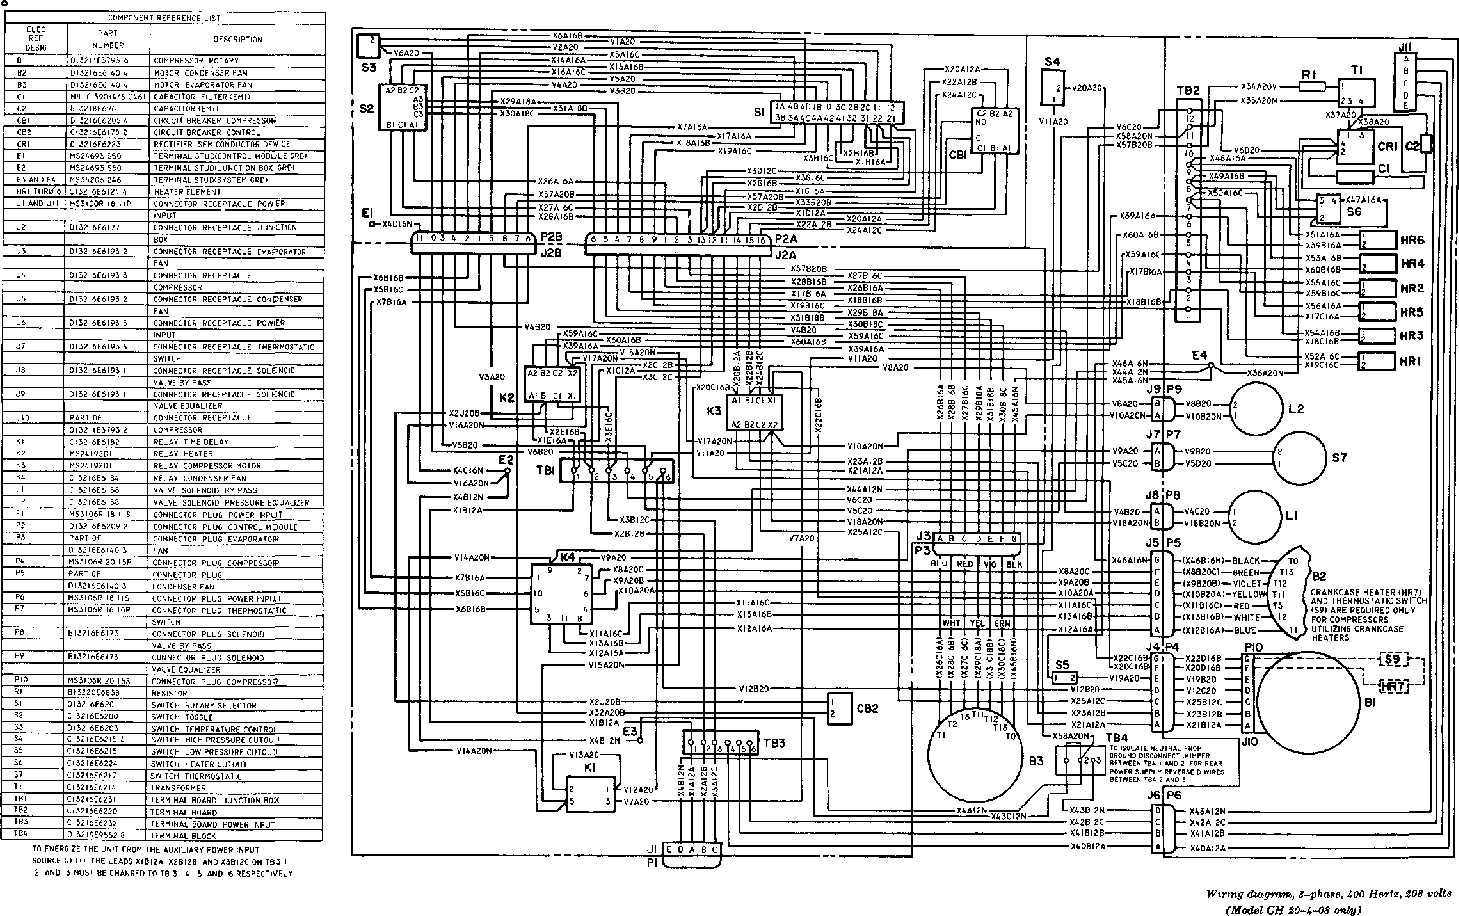 phase panel wiring diagram wiring diagrams and schematics vfd starter panel wiring diagram